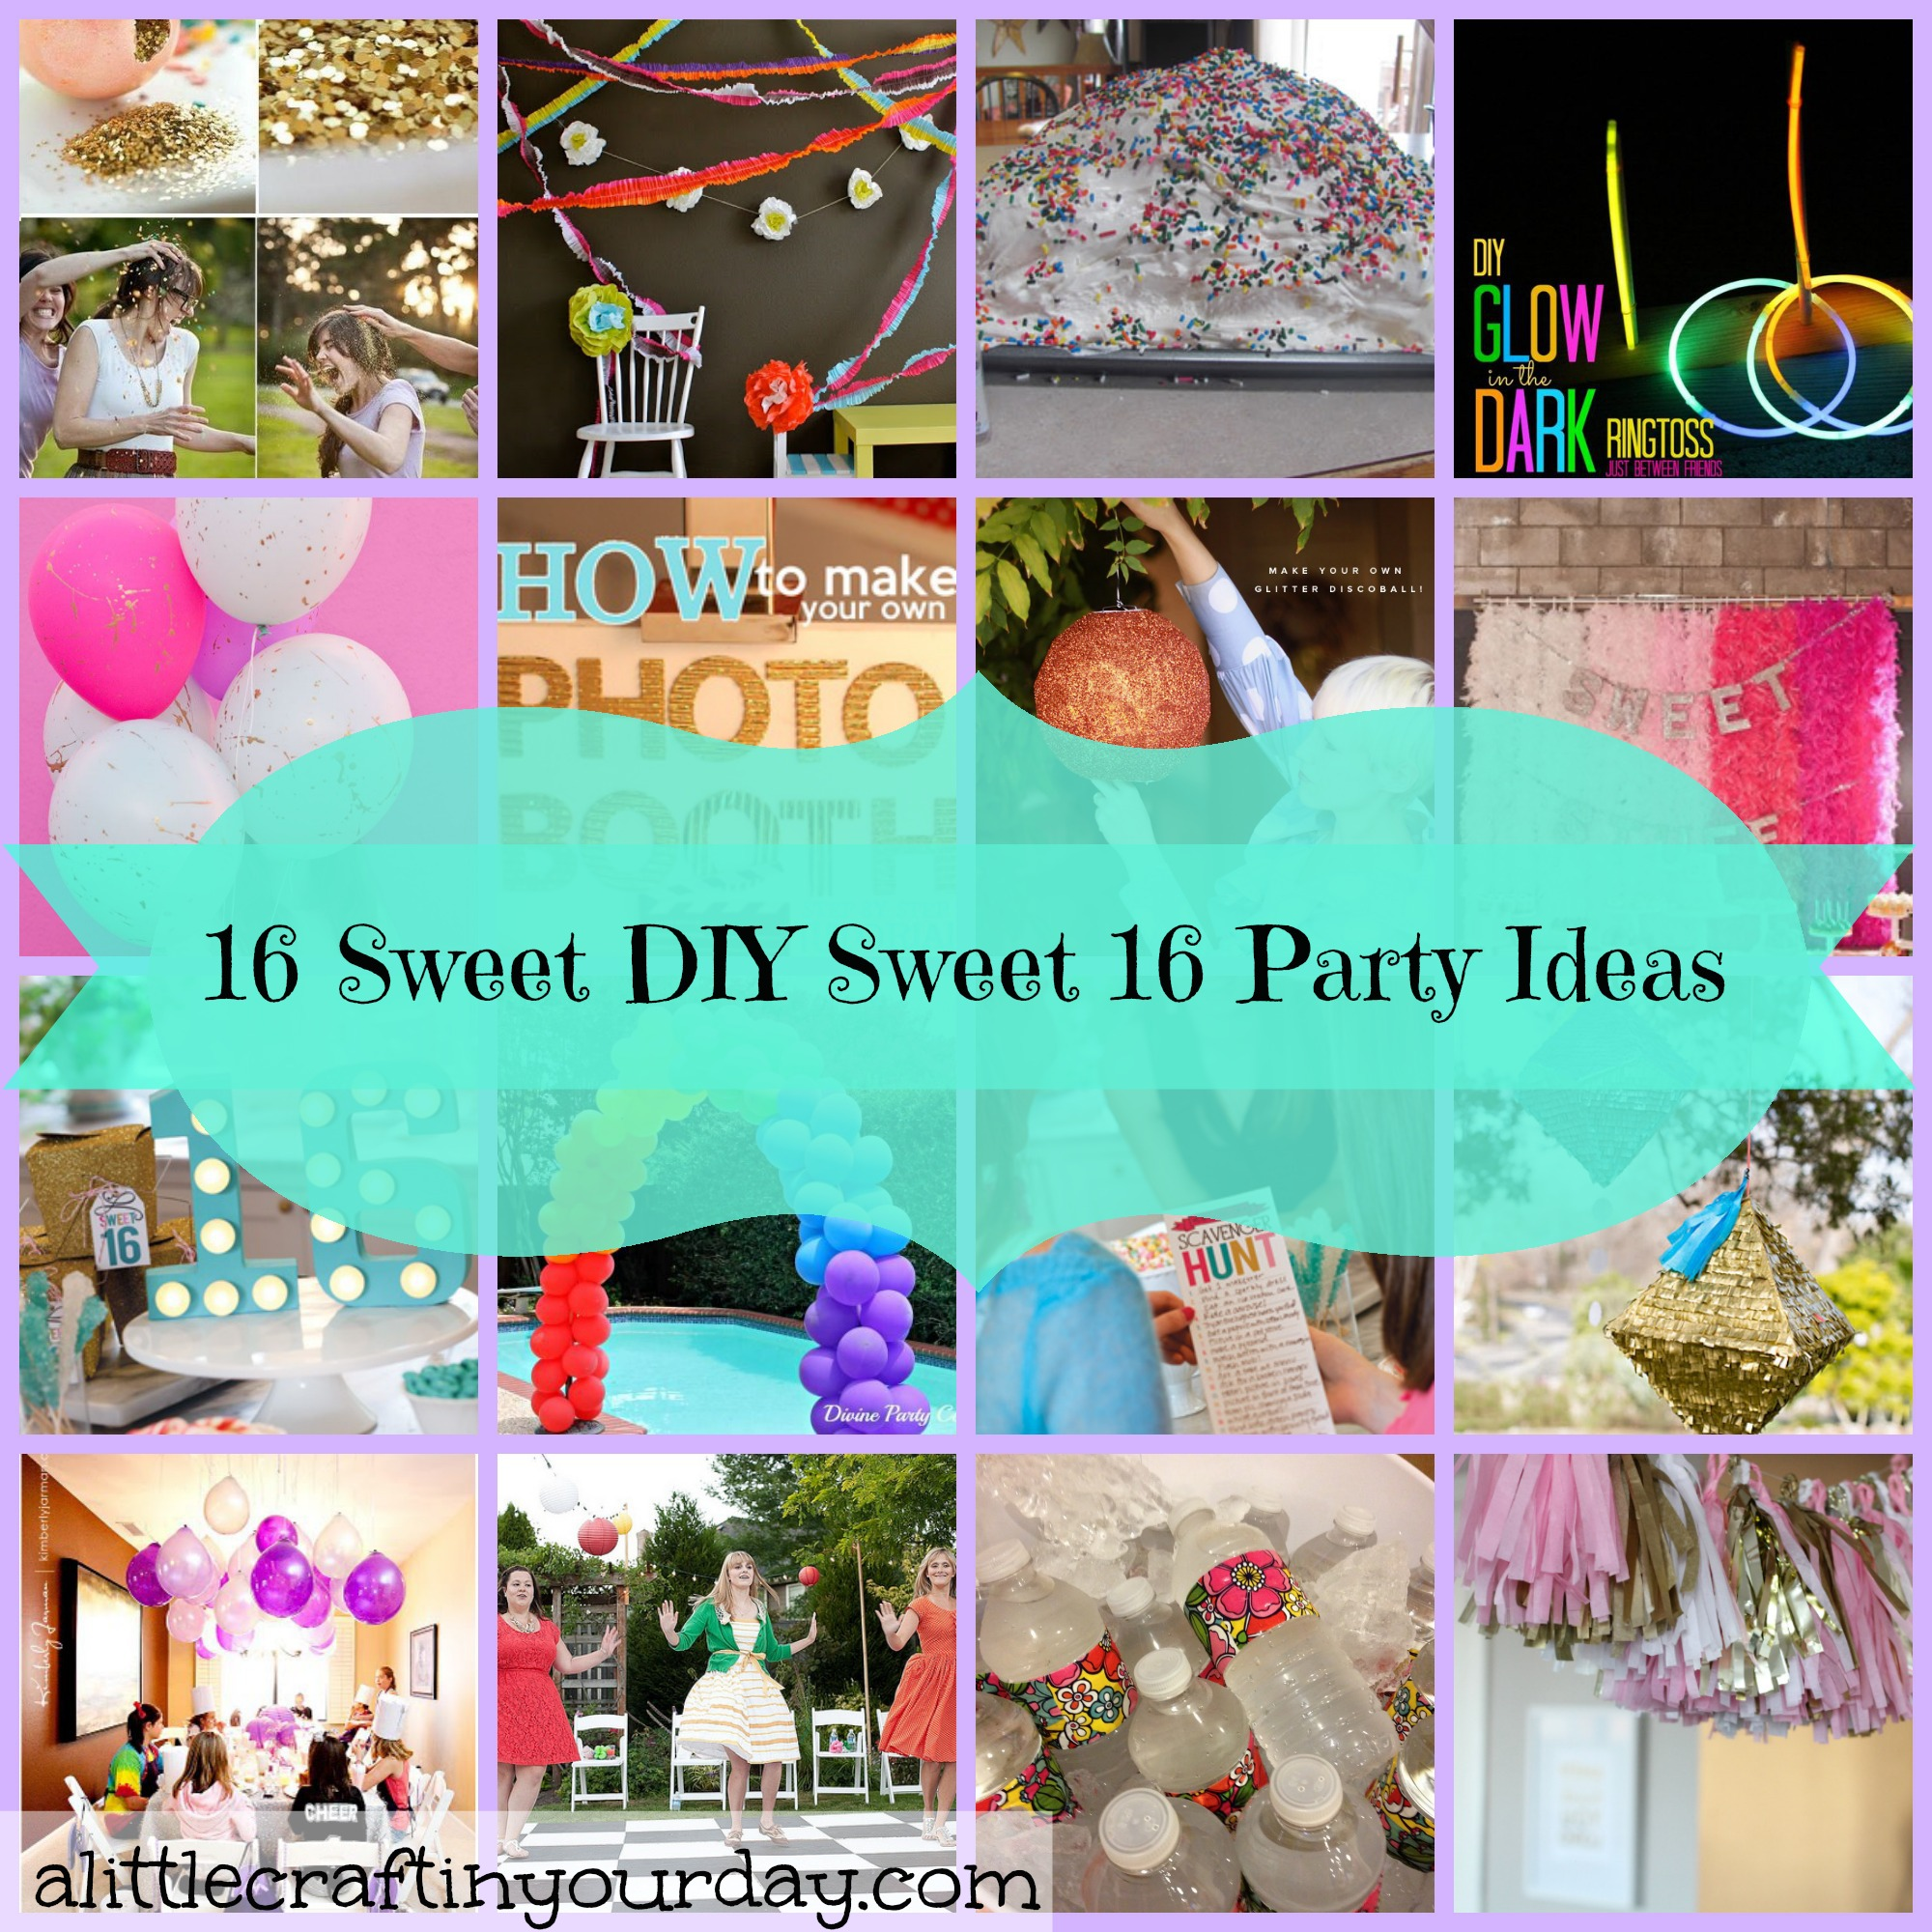 activities at a sweet 16 birthday party ; winsome-ideas-for-16th-birthday-party-games-16-sweet-diy-a-little-craft-in-your-day